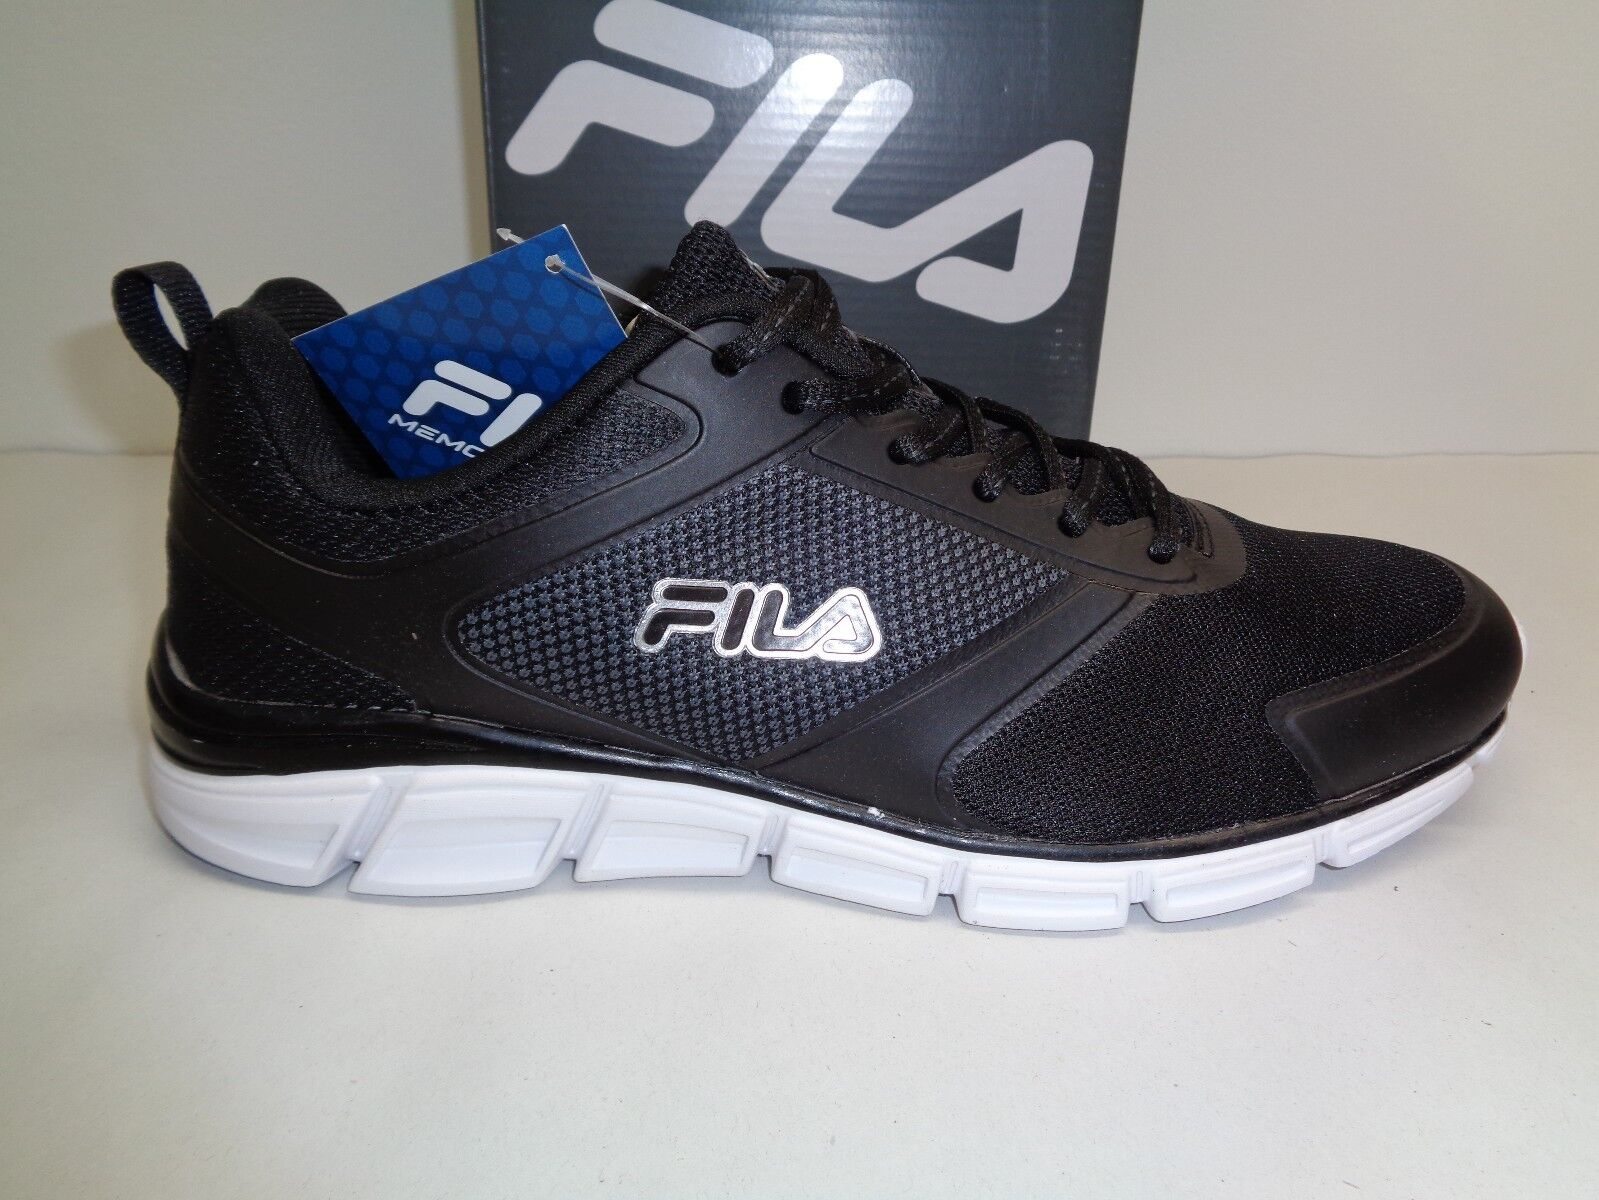 Fila Size 11 MEMORY STEELSPRINT Black Training Athletic Sneakers New Mens Shoes